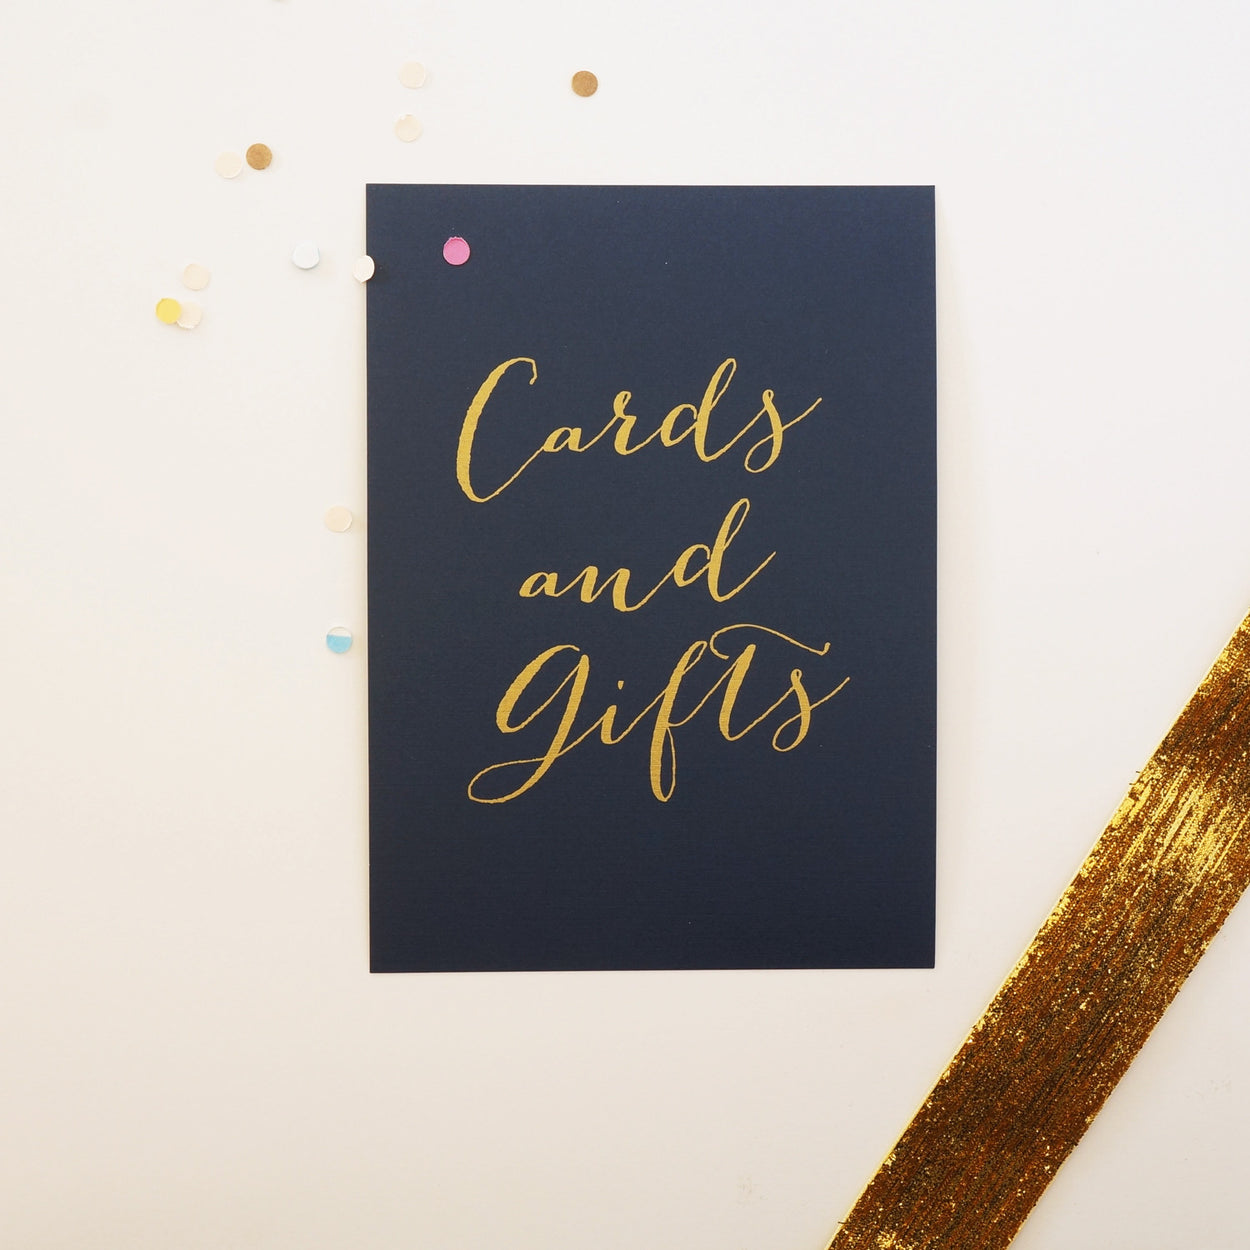 Navy & Gold Cards & Gifts Wedding Sign - shop greeting cards, handmade stationery, & wedding invitations by dodeline design